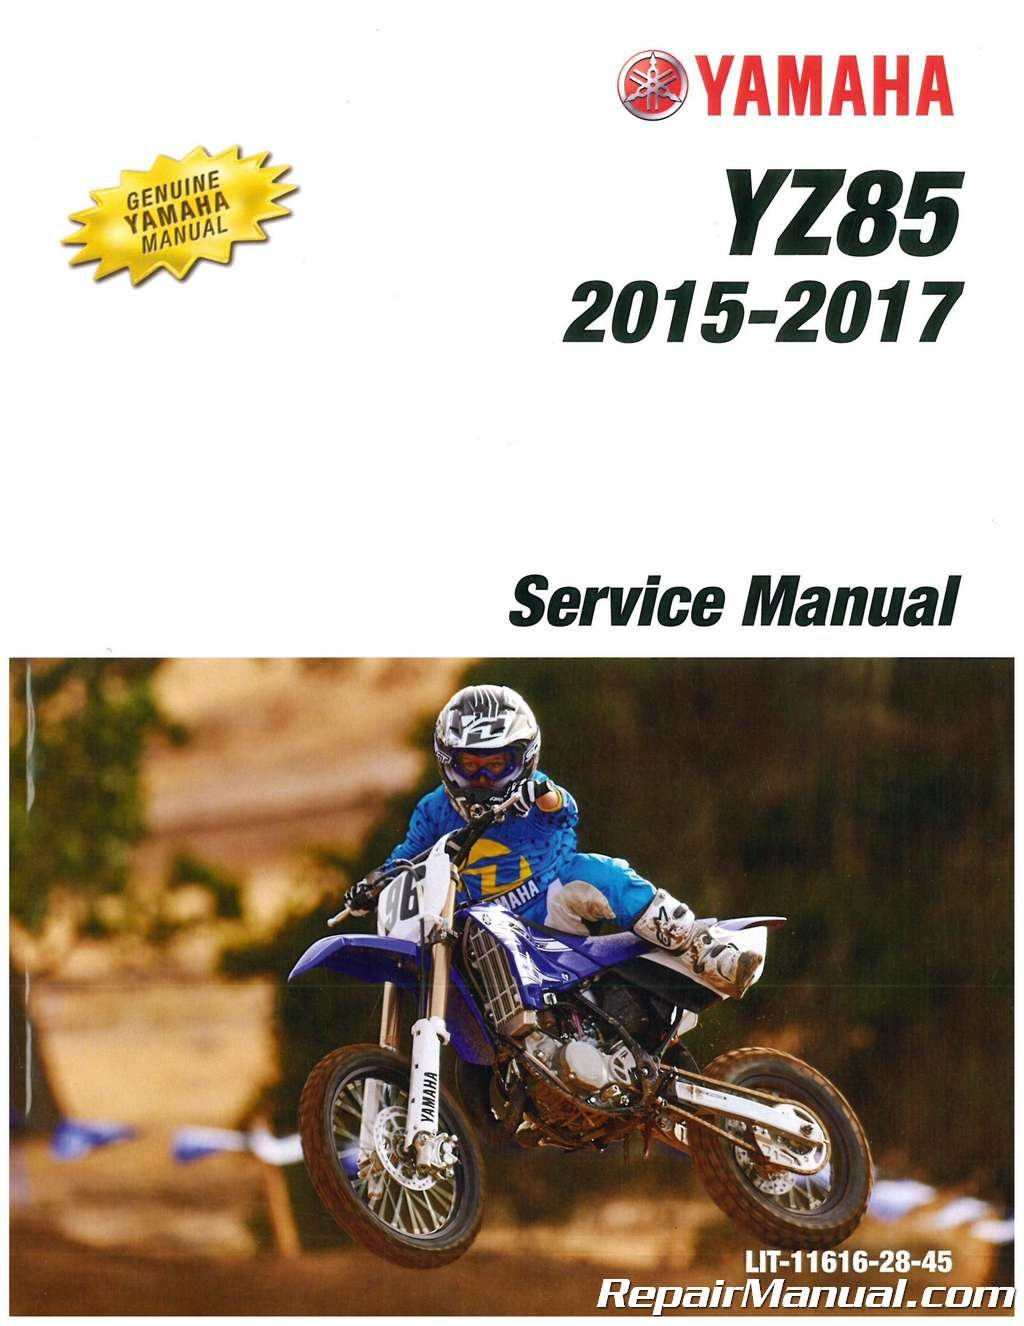 LIT-11616-28-13 2014 Yamaha V Star 1300 and 2015-2017 Stryker Motorcycle Service  Manual: Manufacturer: Amazon.com: Books